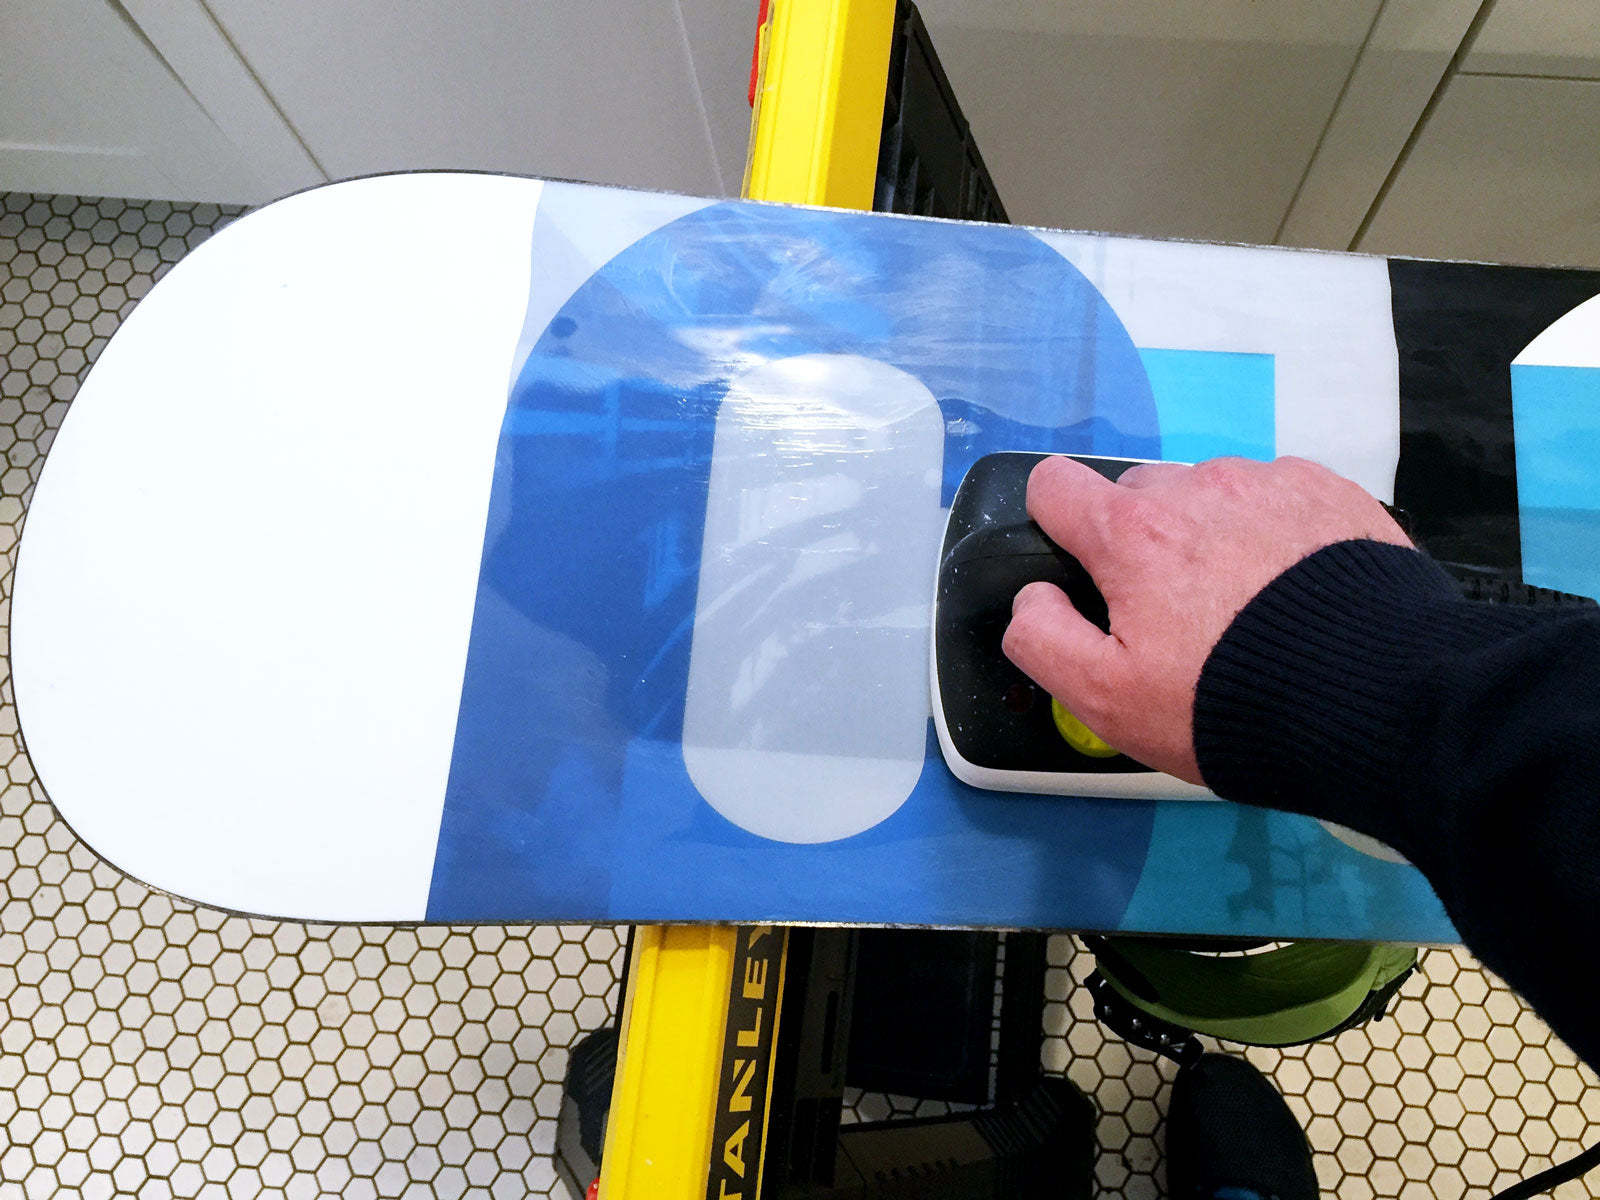 Using a wax iron to wax a snowboard